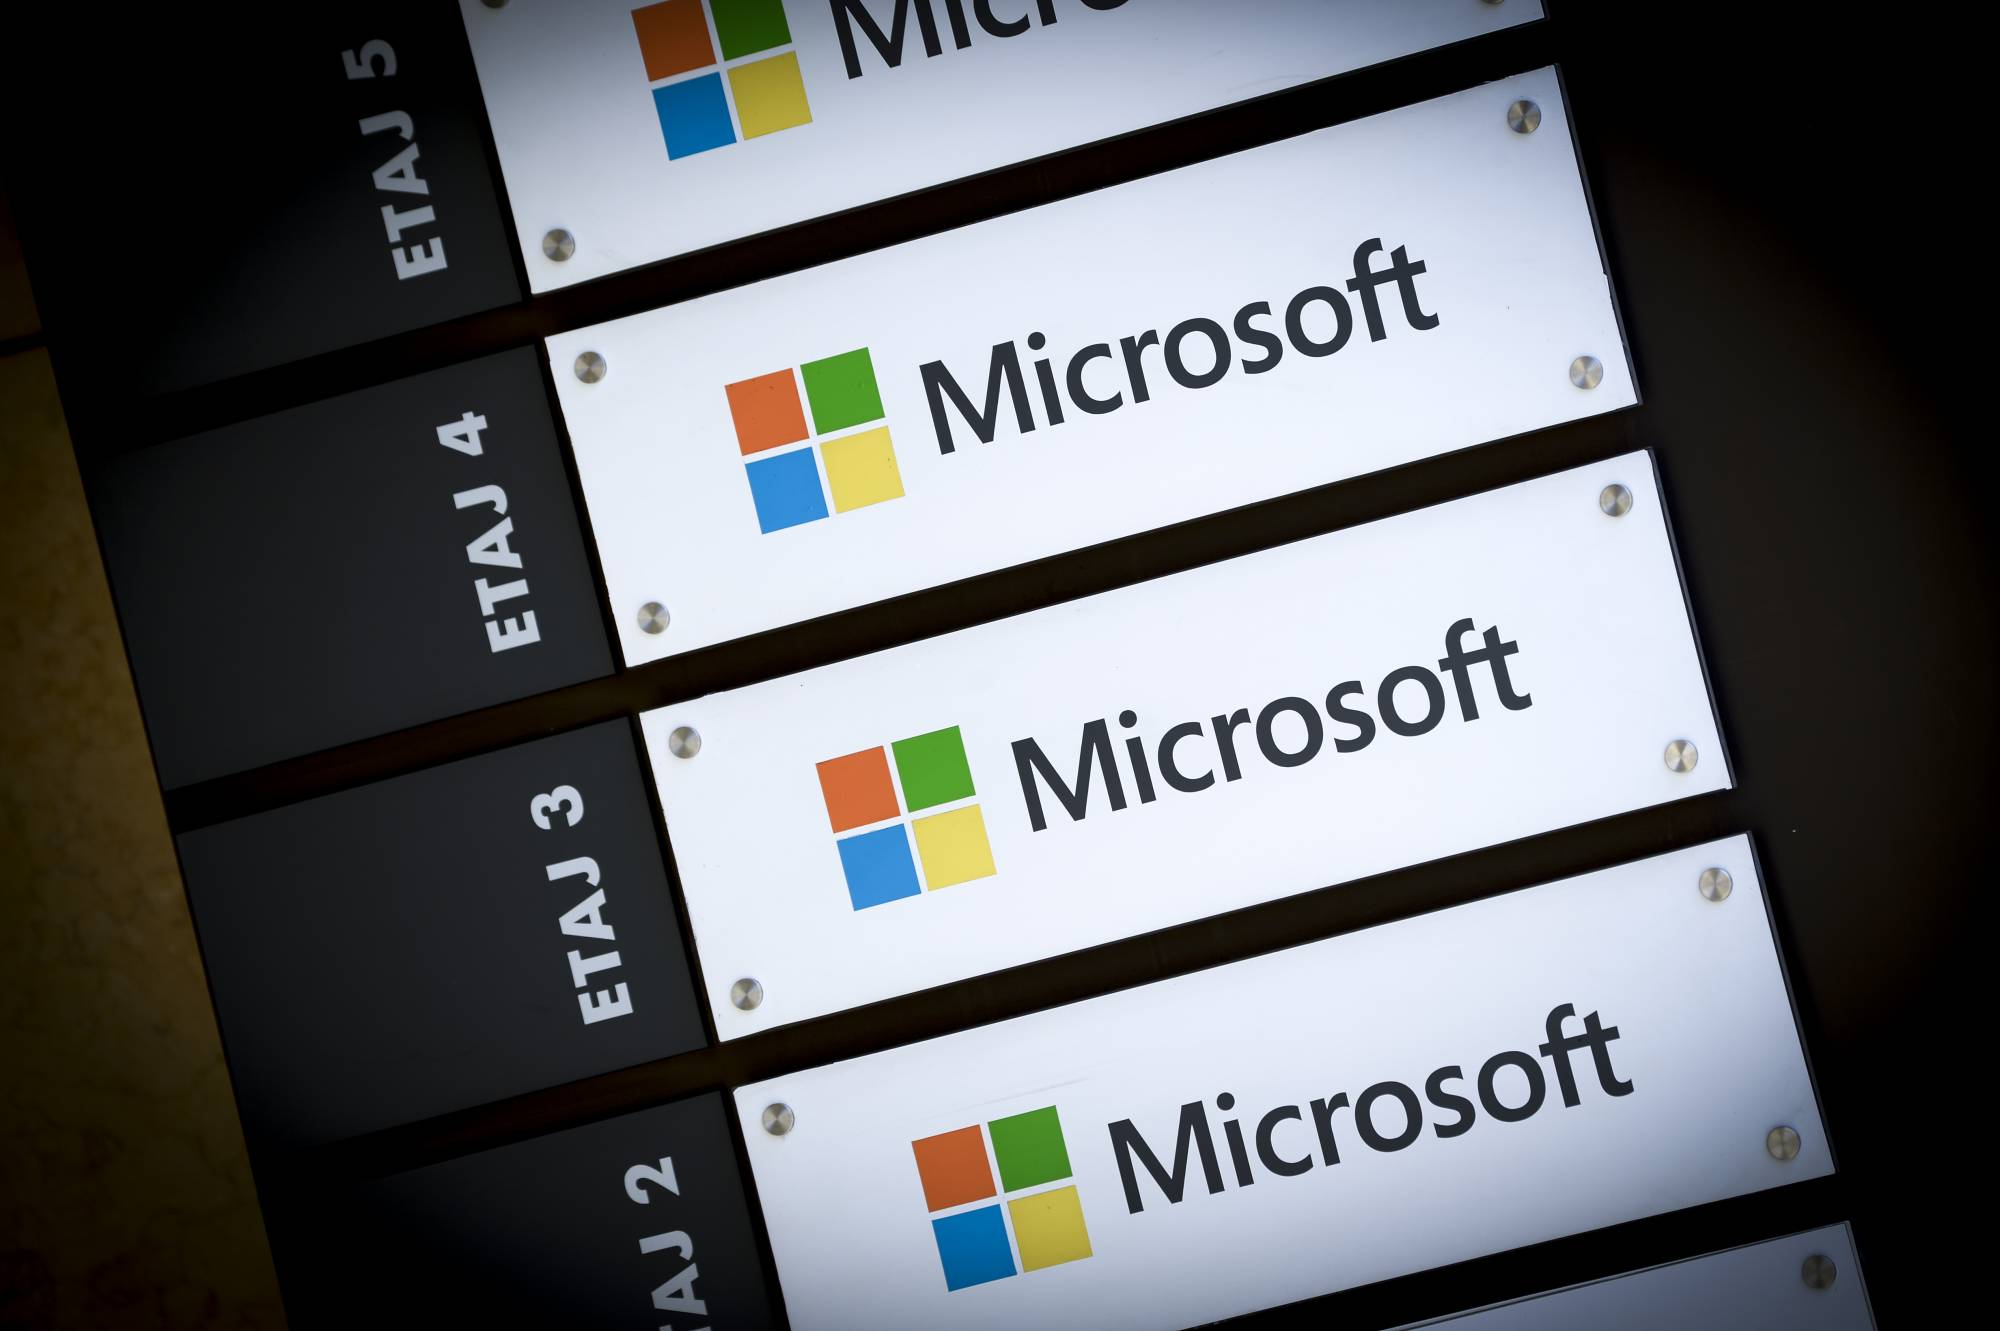 Microsoft will contribute over 60,000 patents to the Open Invention Network.